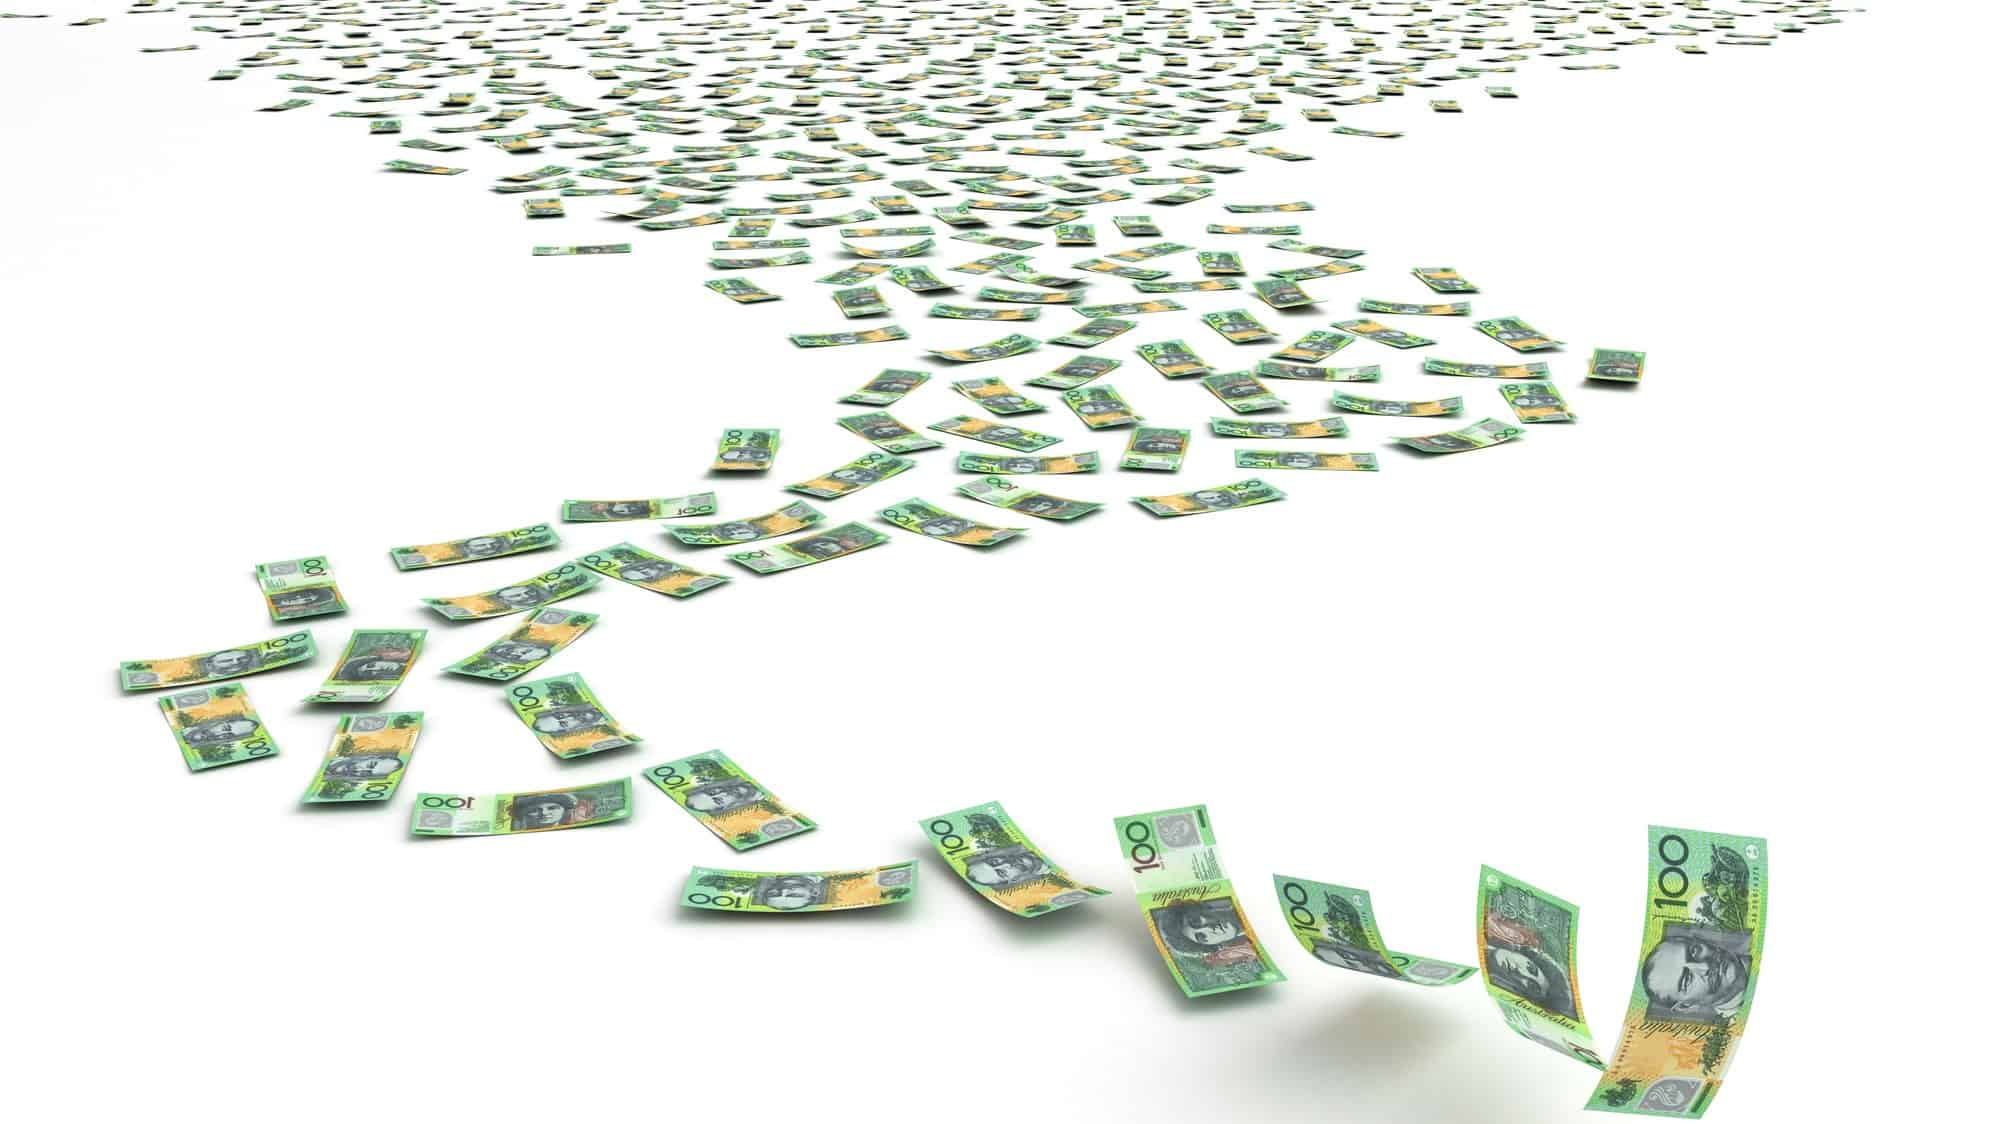 $100 notes multiplying into the future representing asx growth shares